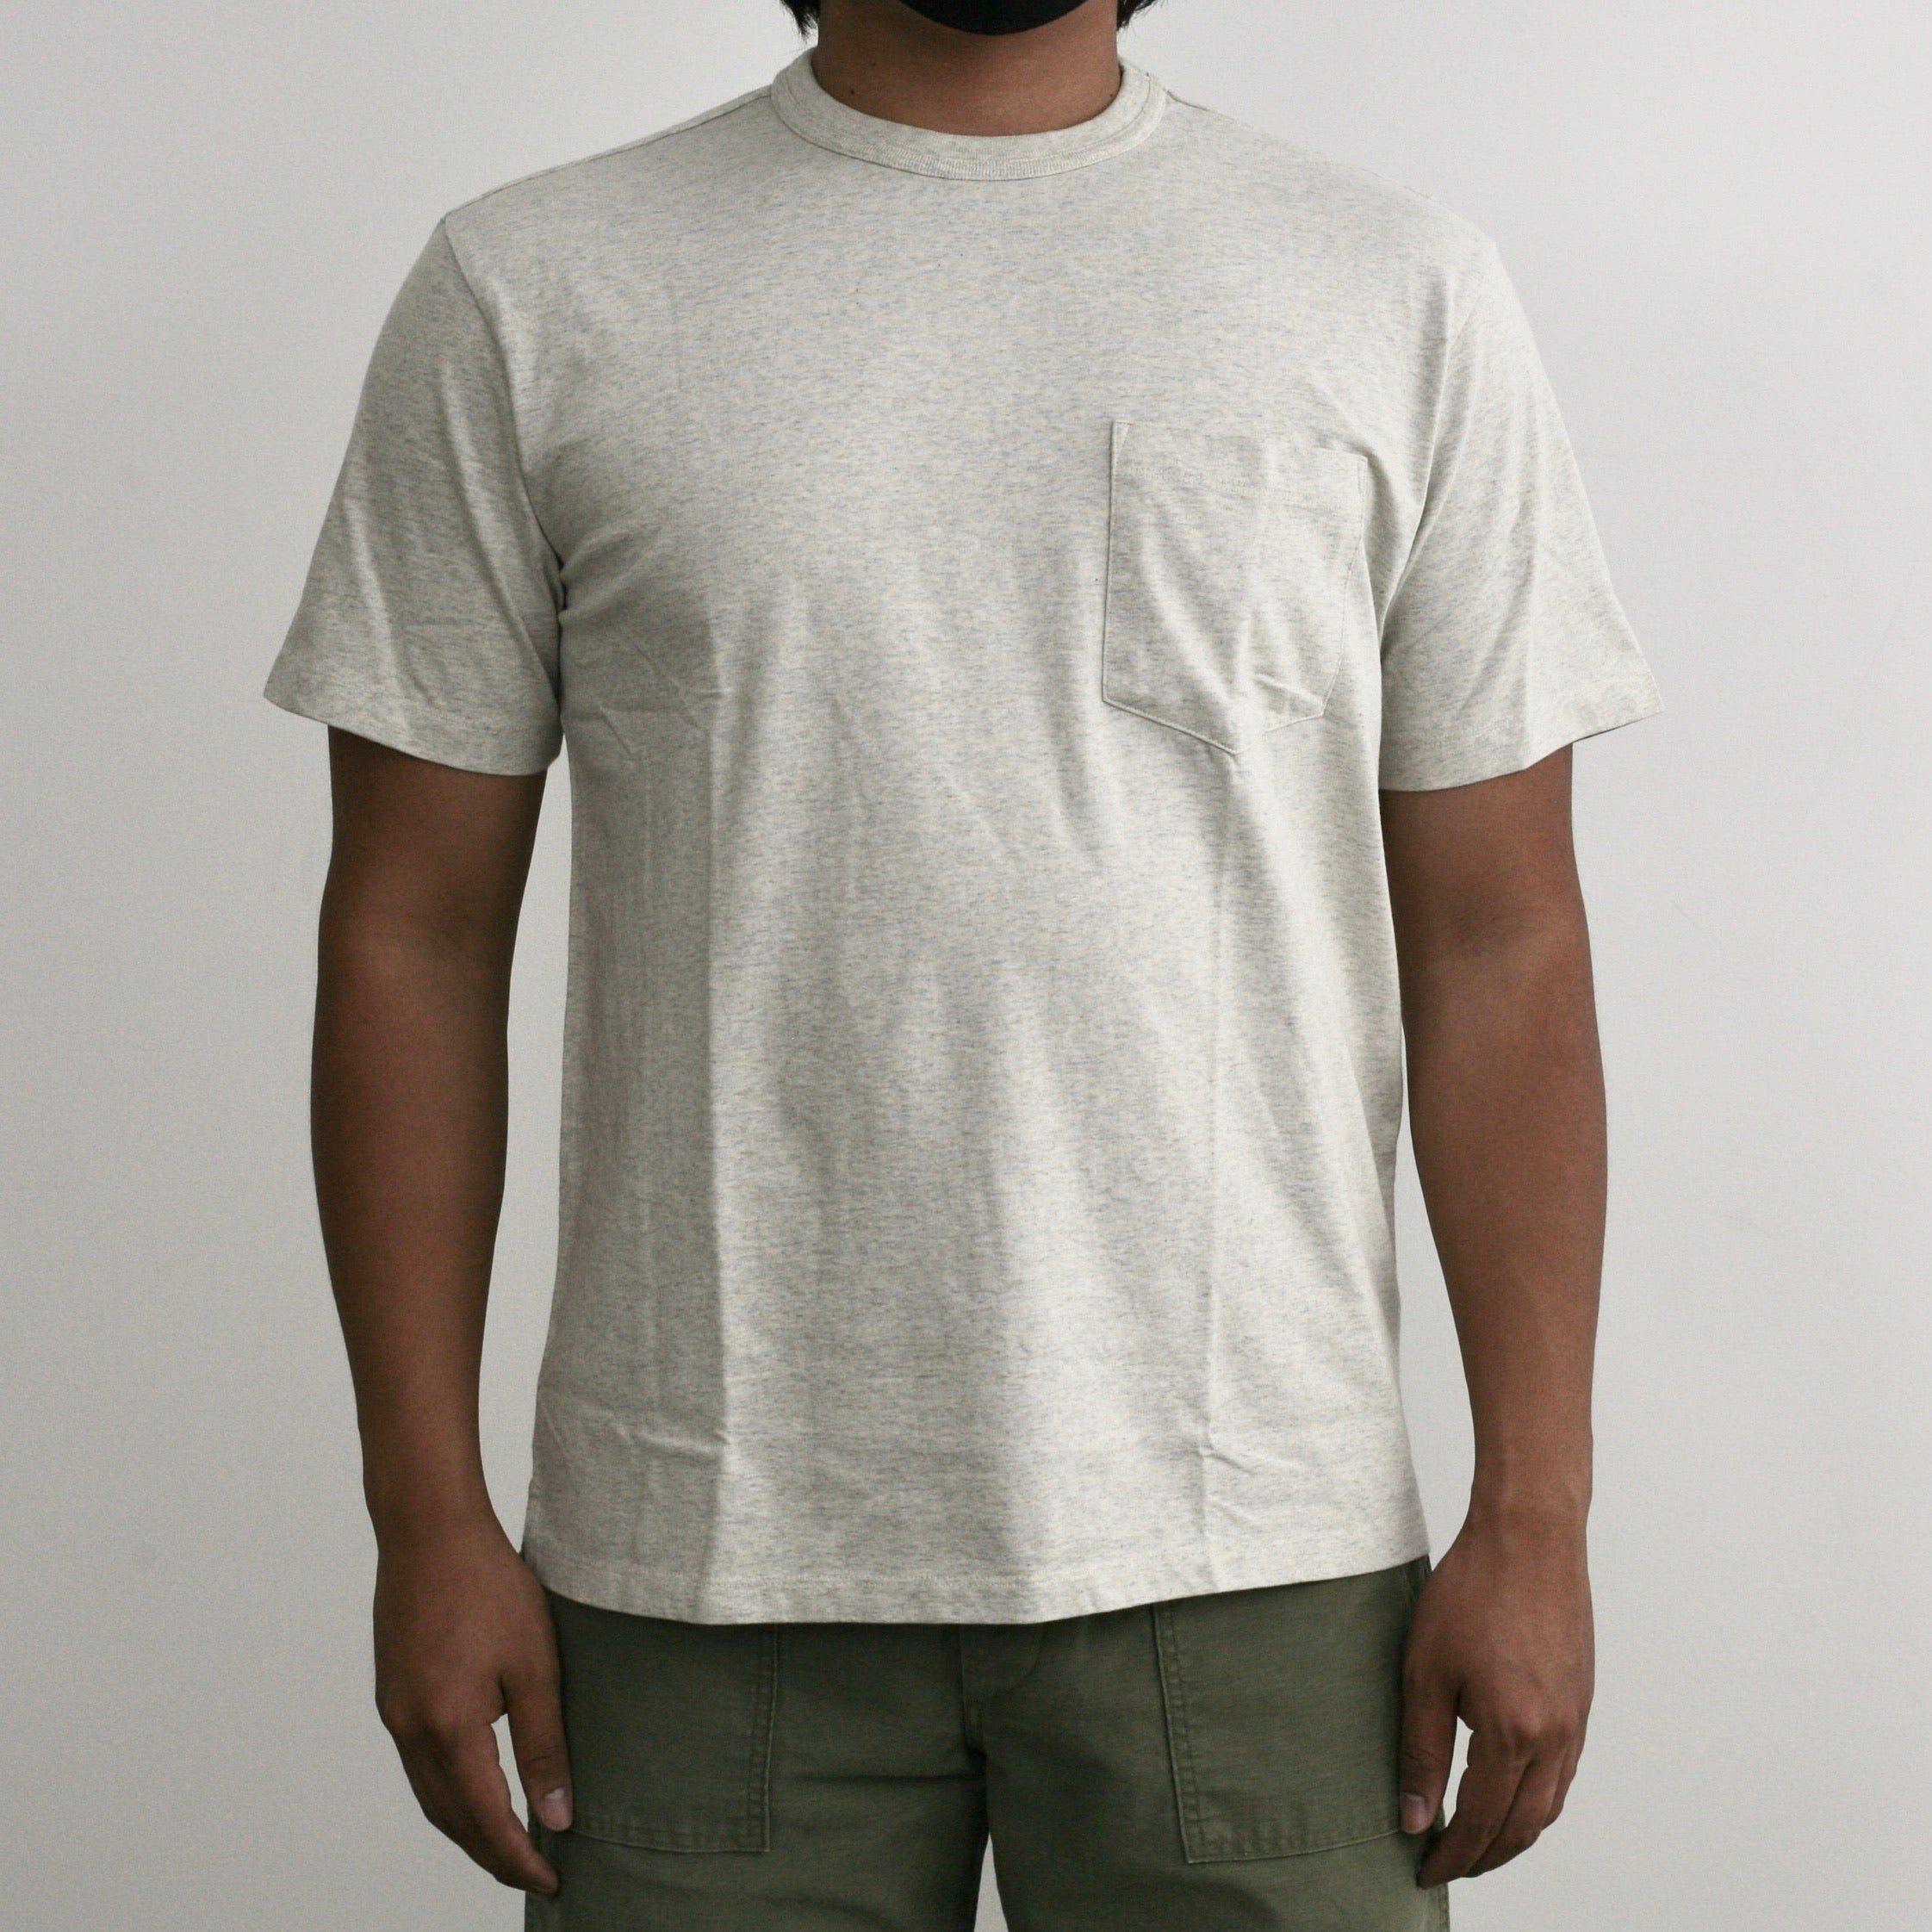 One Pocket T-Shirt in Oatmeal